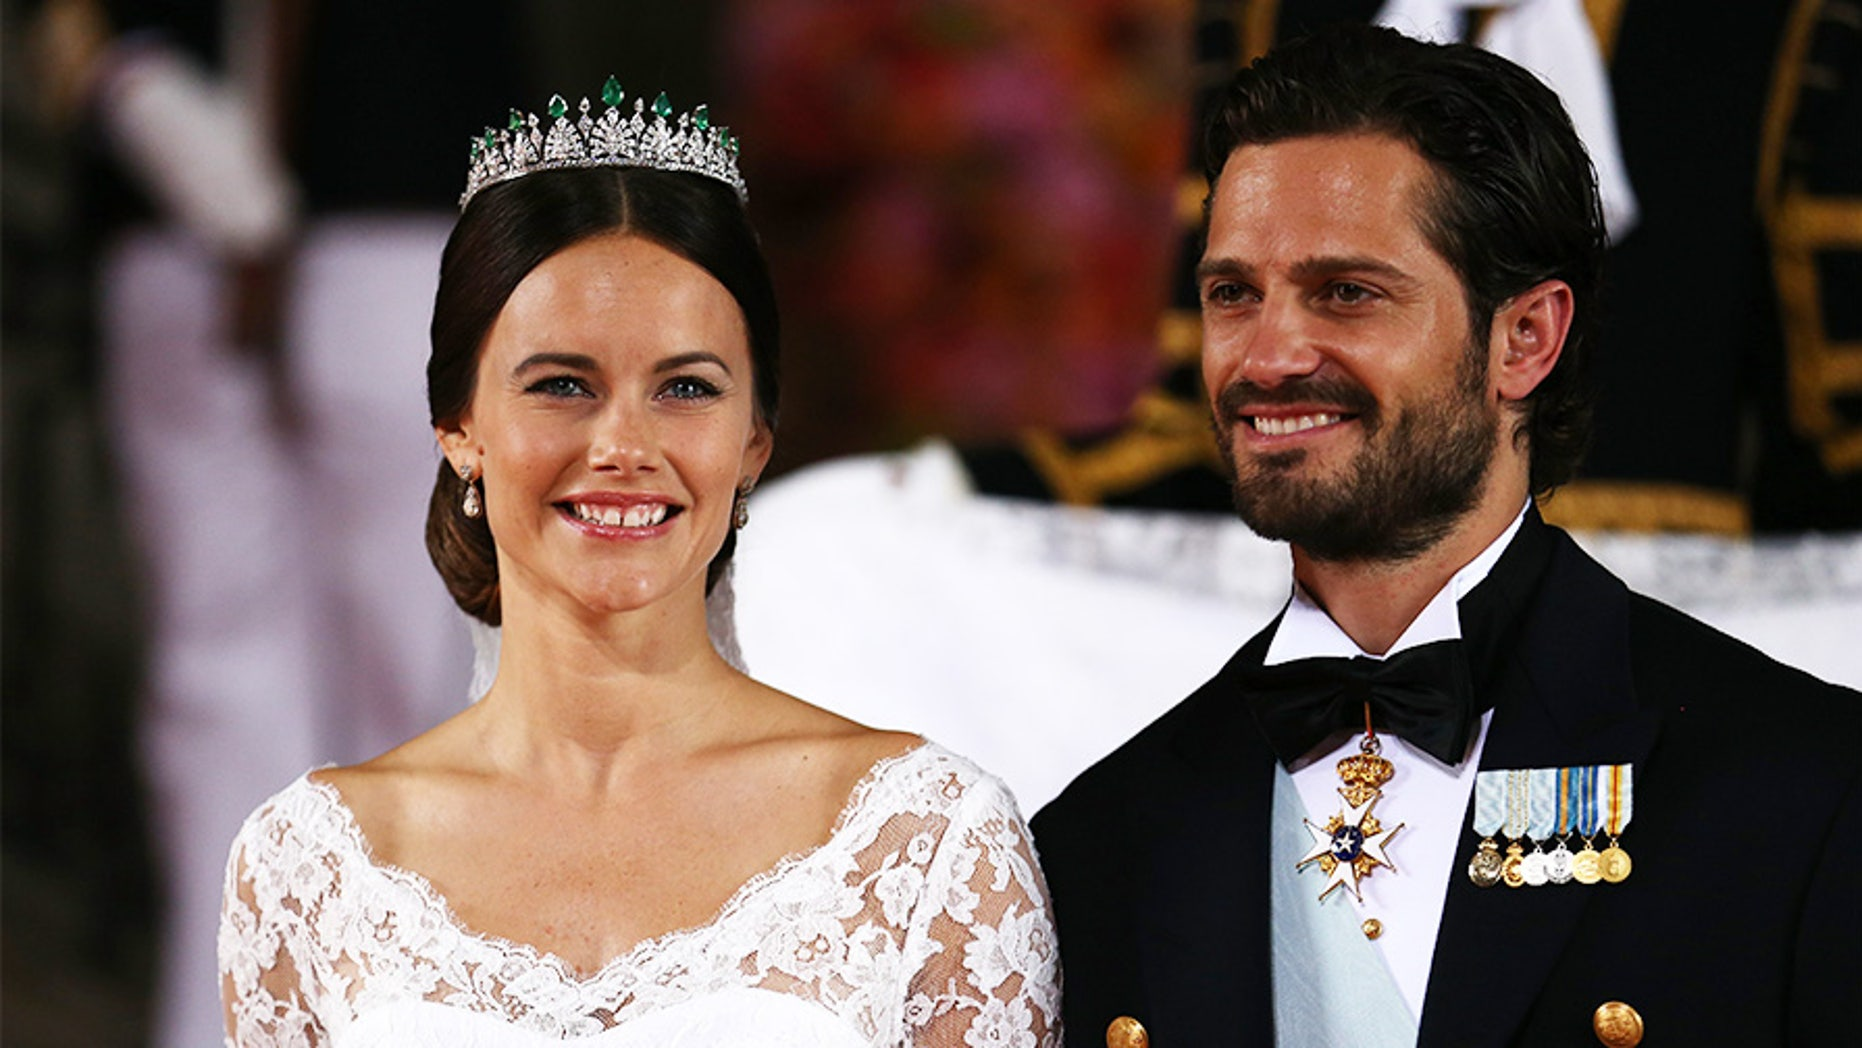 Princess Sofia of Sweden said she endured online bullying when she first began dating Prince Carl Philip.